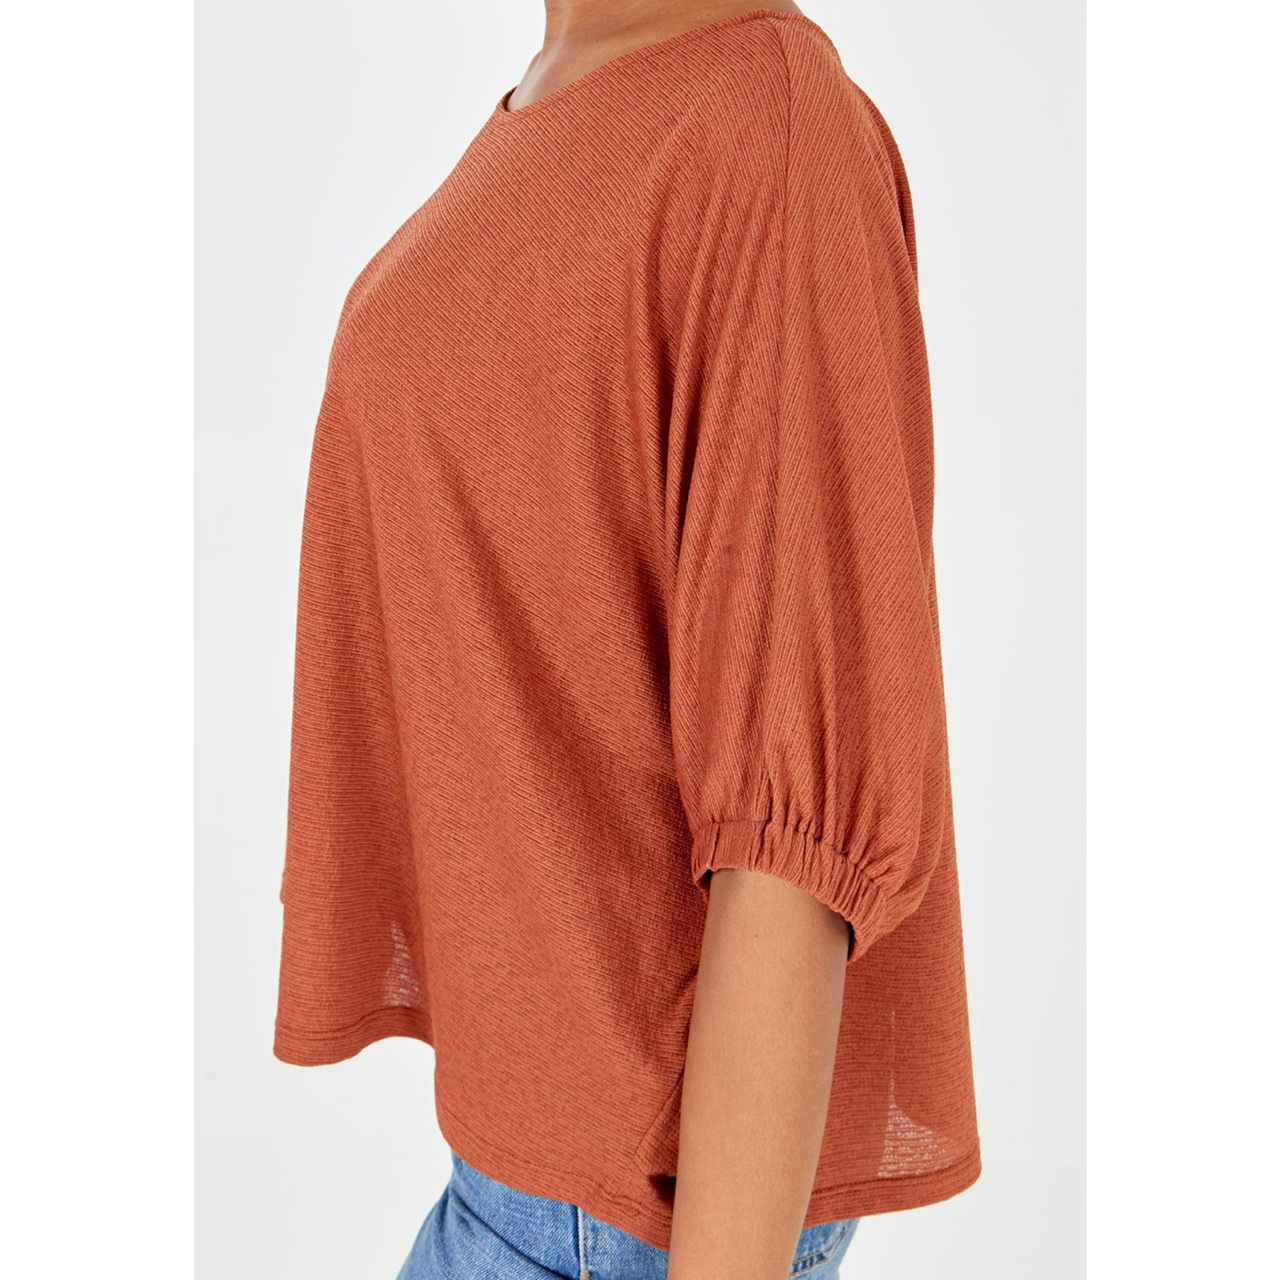 Orange 3/4 Sleeve Crew Neck Top